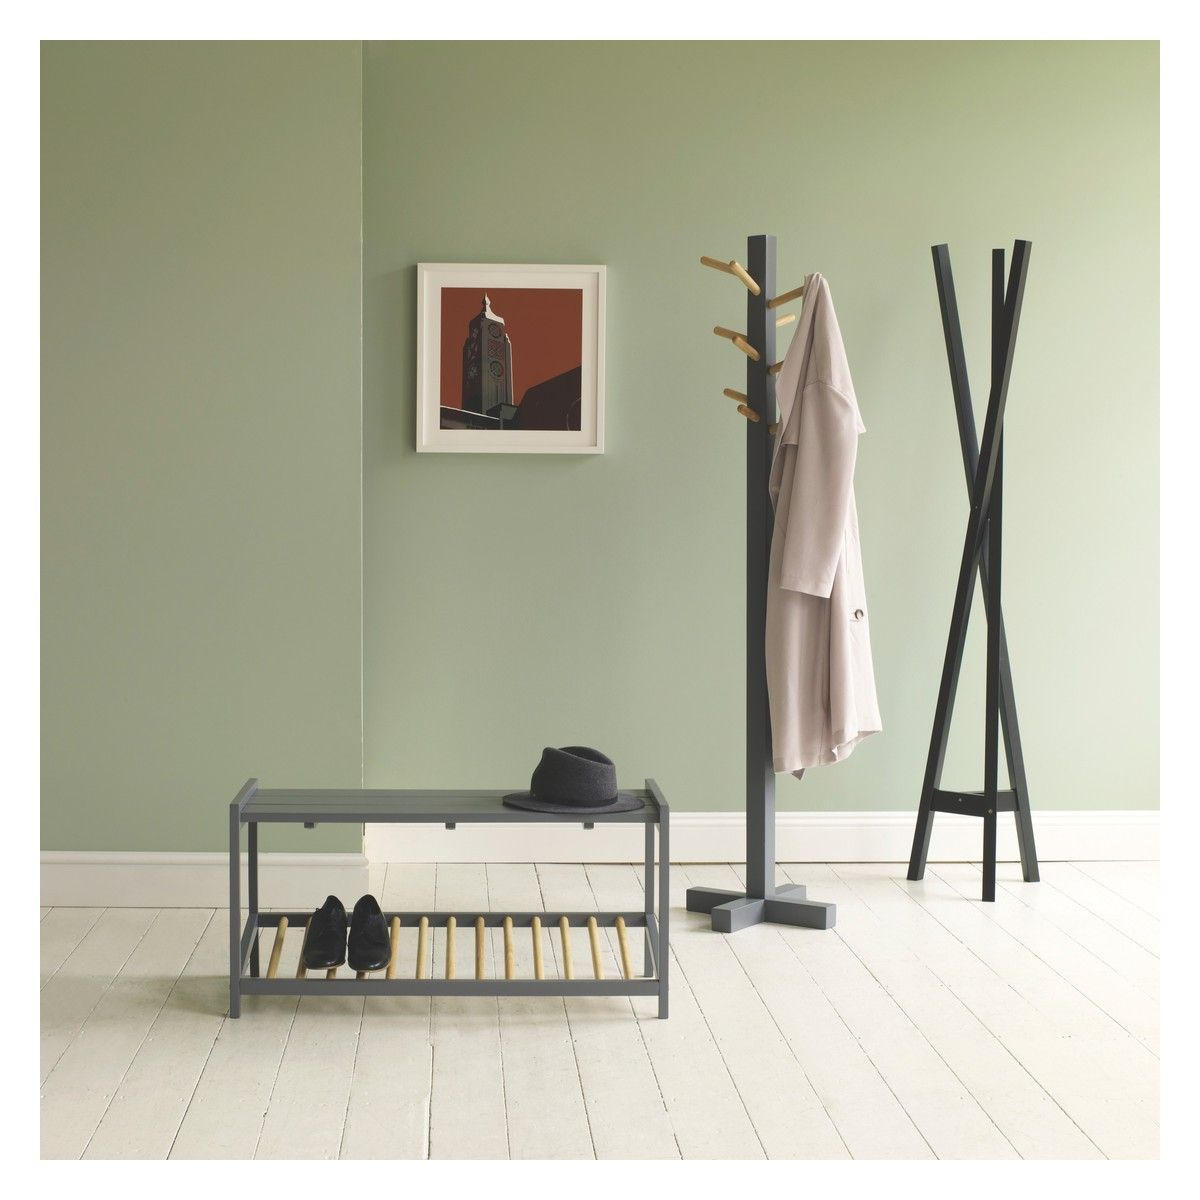 Green coat stand